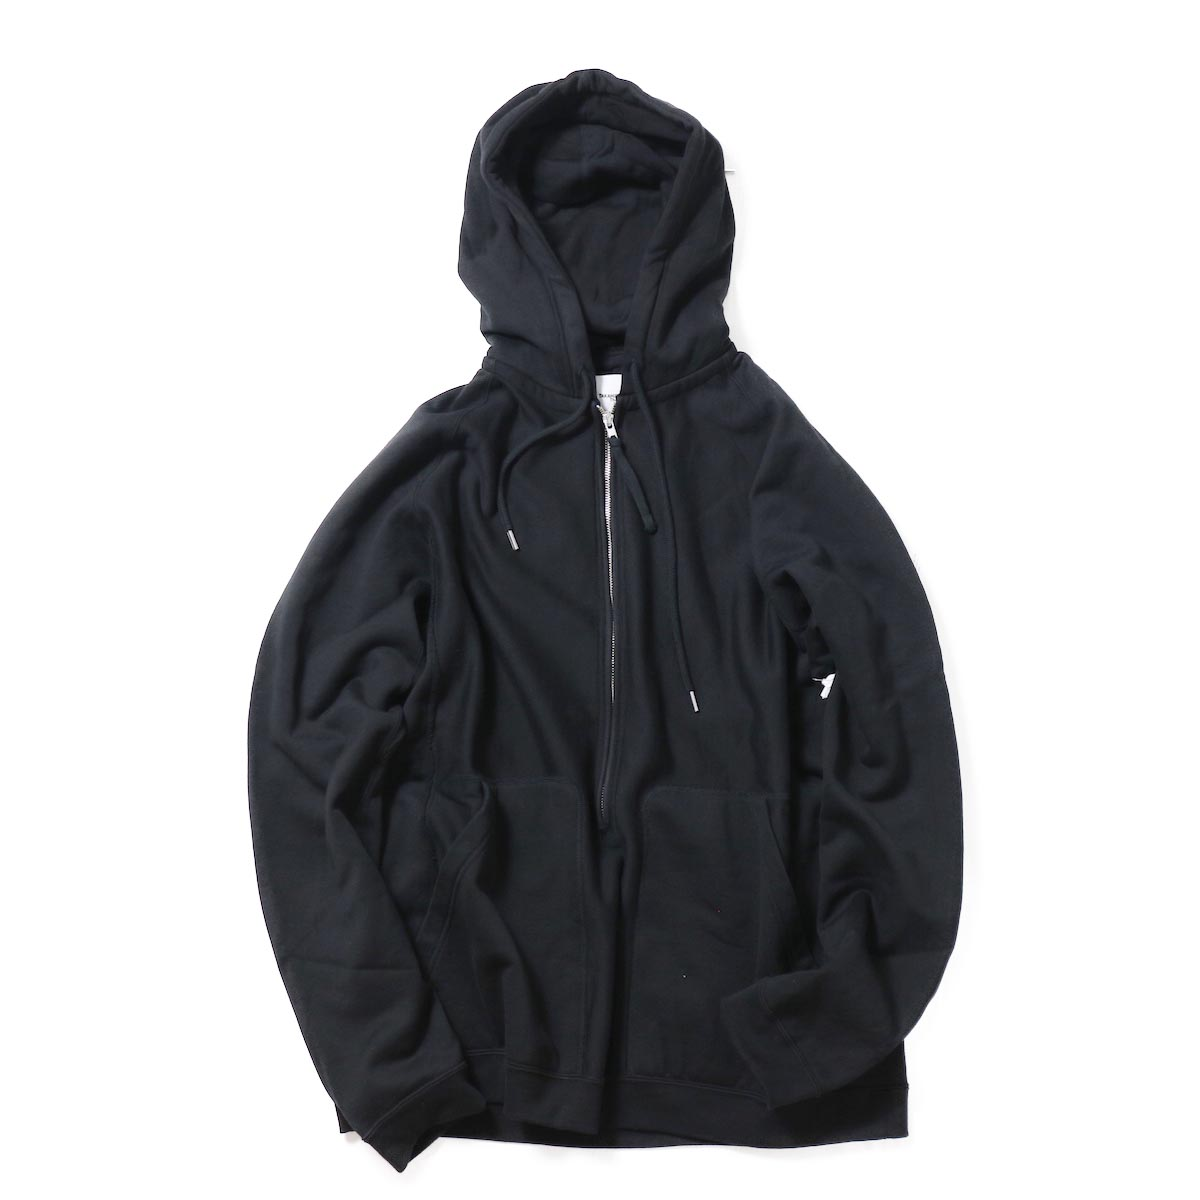 The Soloist / swc.0013aAW18  oversized long zip freedom l/s hoodie. -Black